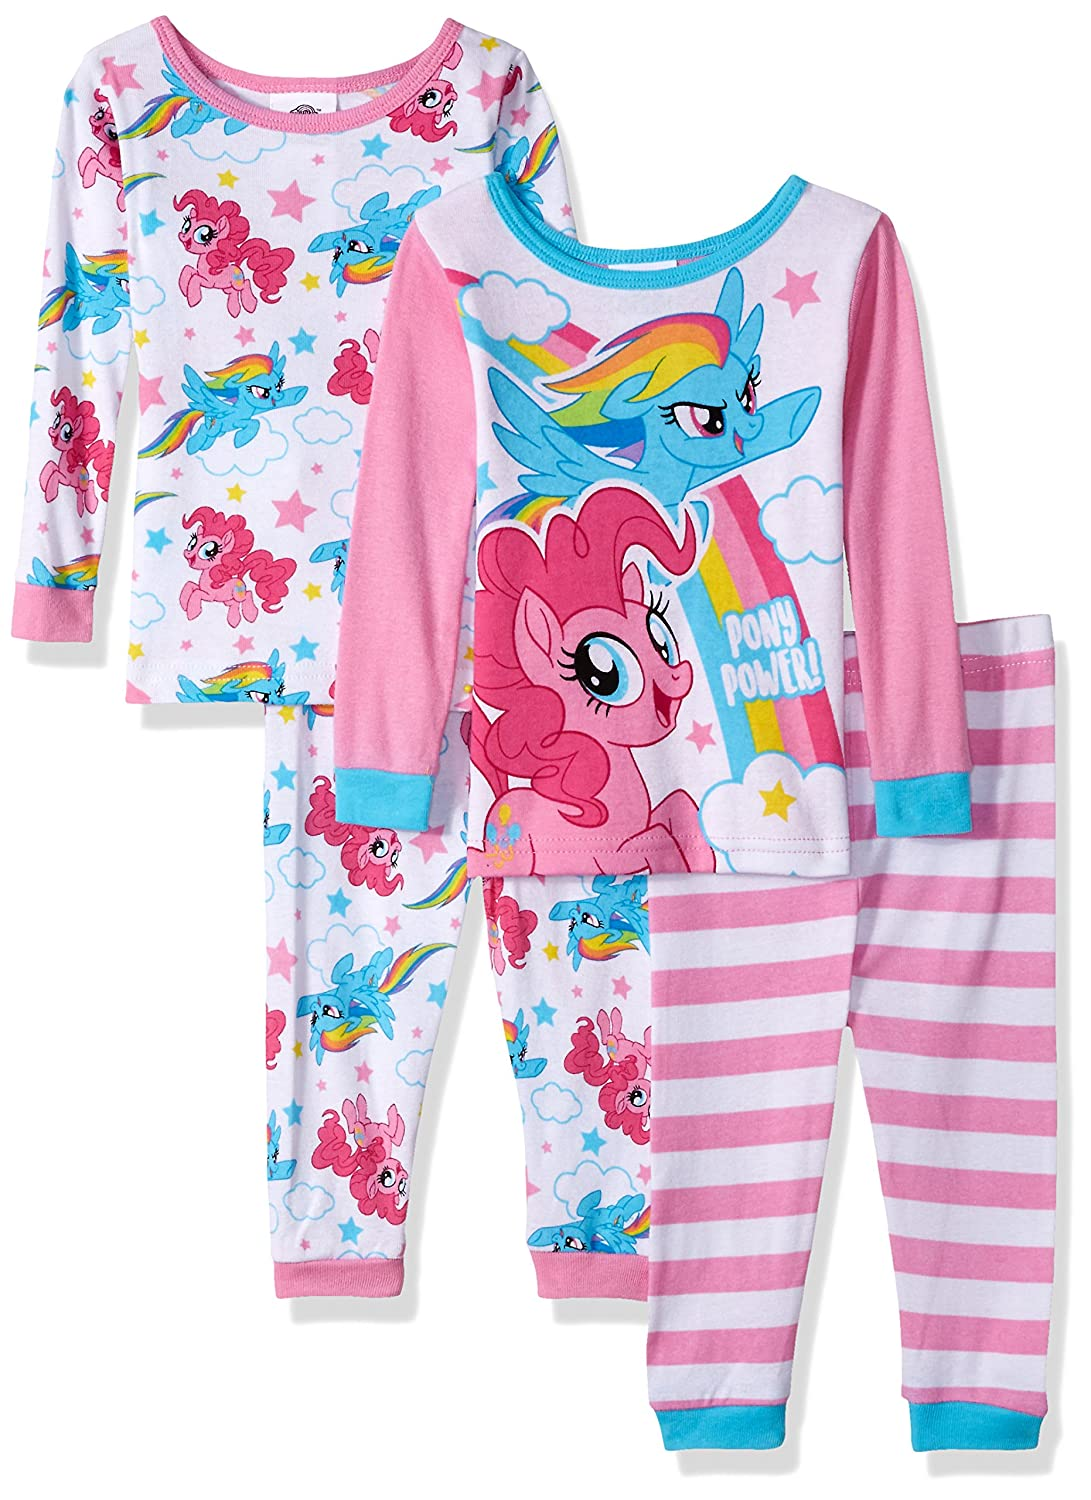 My Little Pony Baby-Girls Baby 4-Piece Cotton Pajama Set 21ML006VLLZA-P6